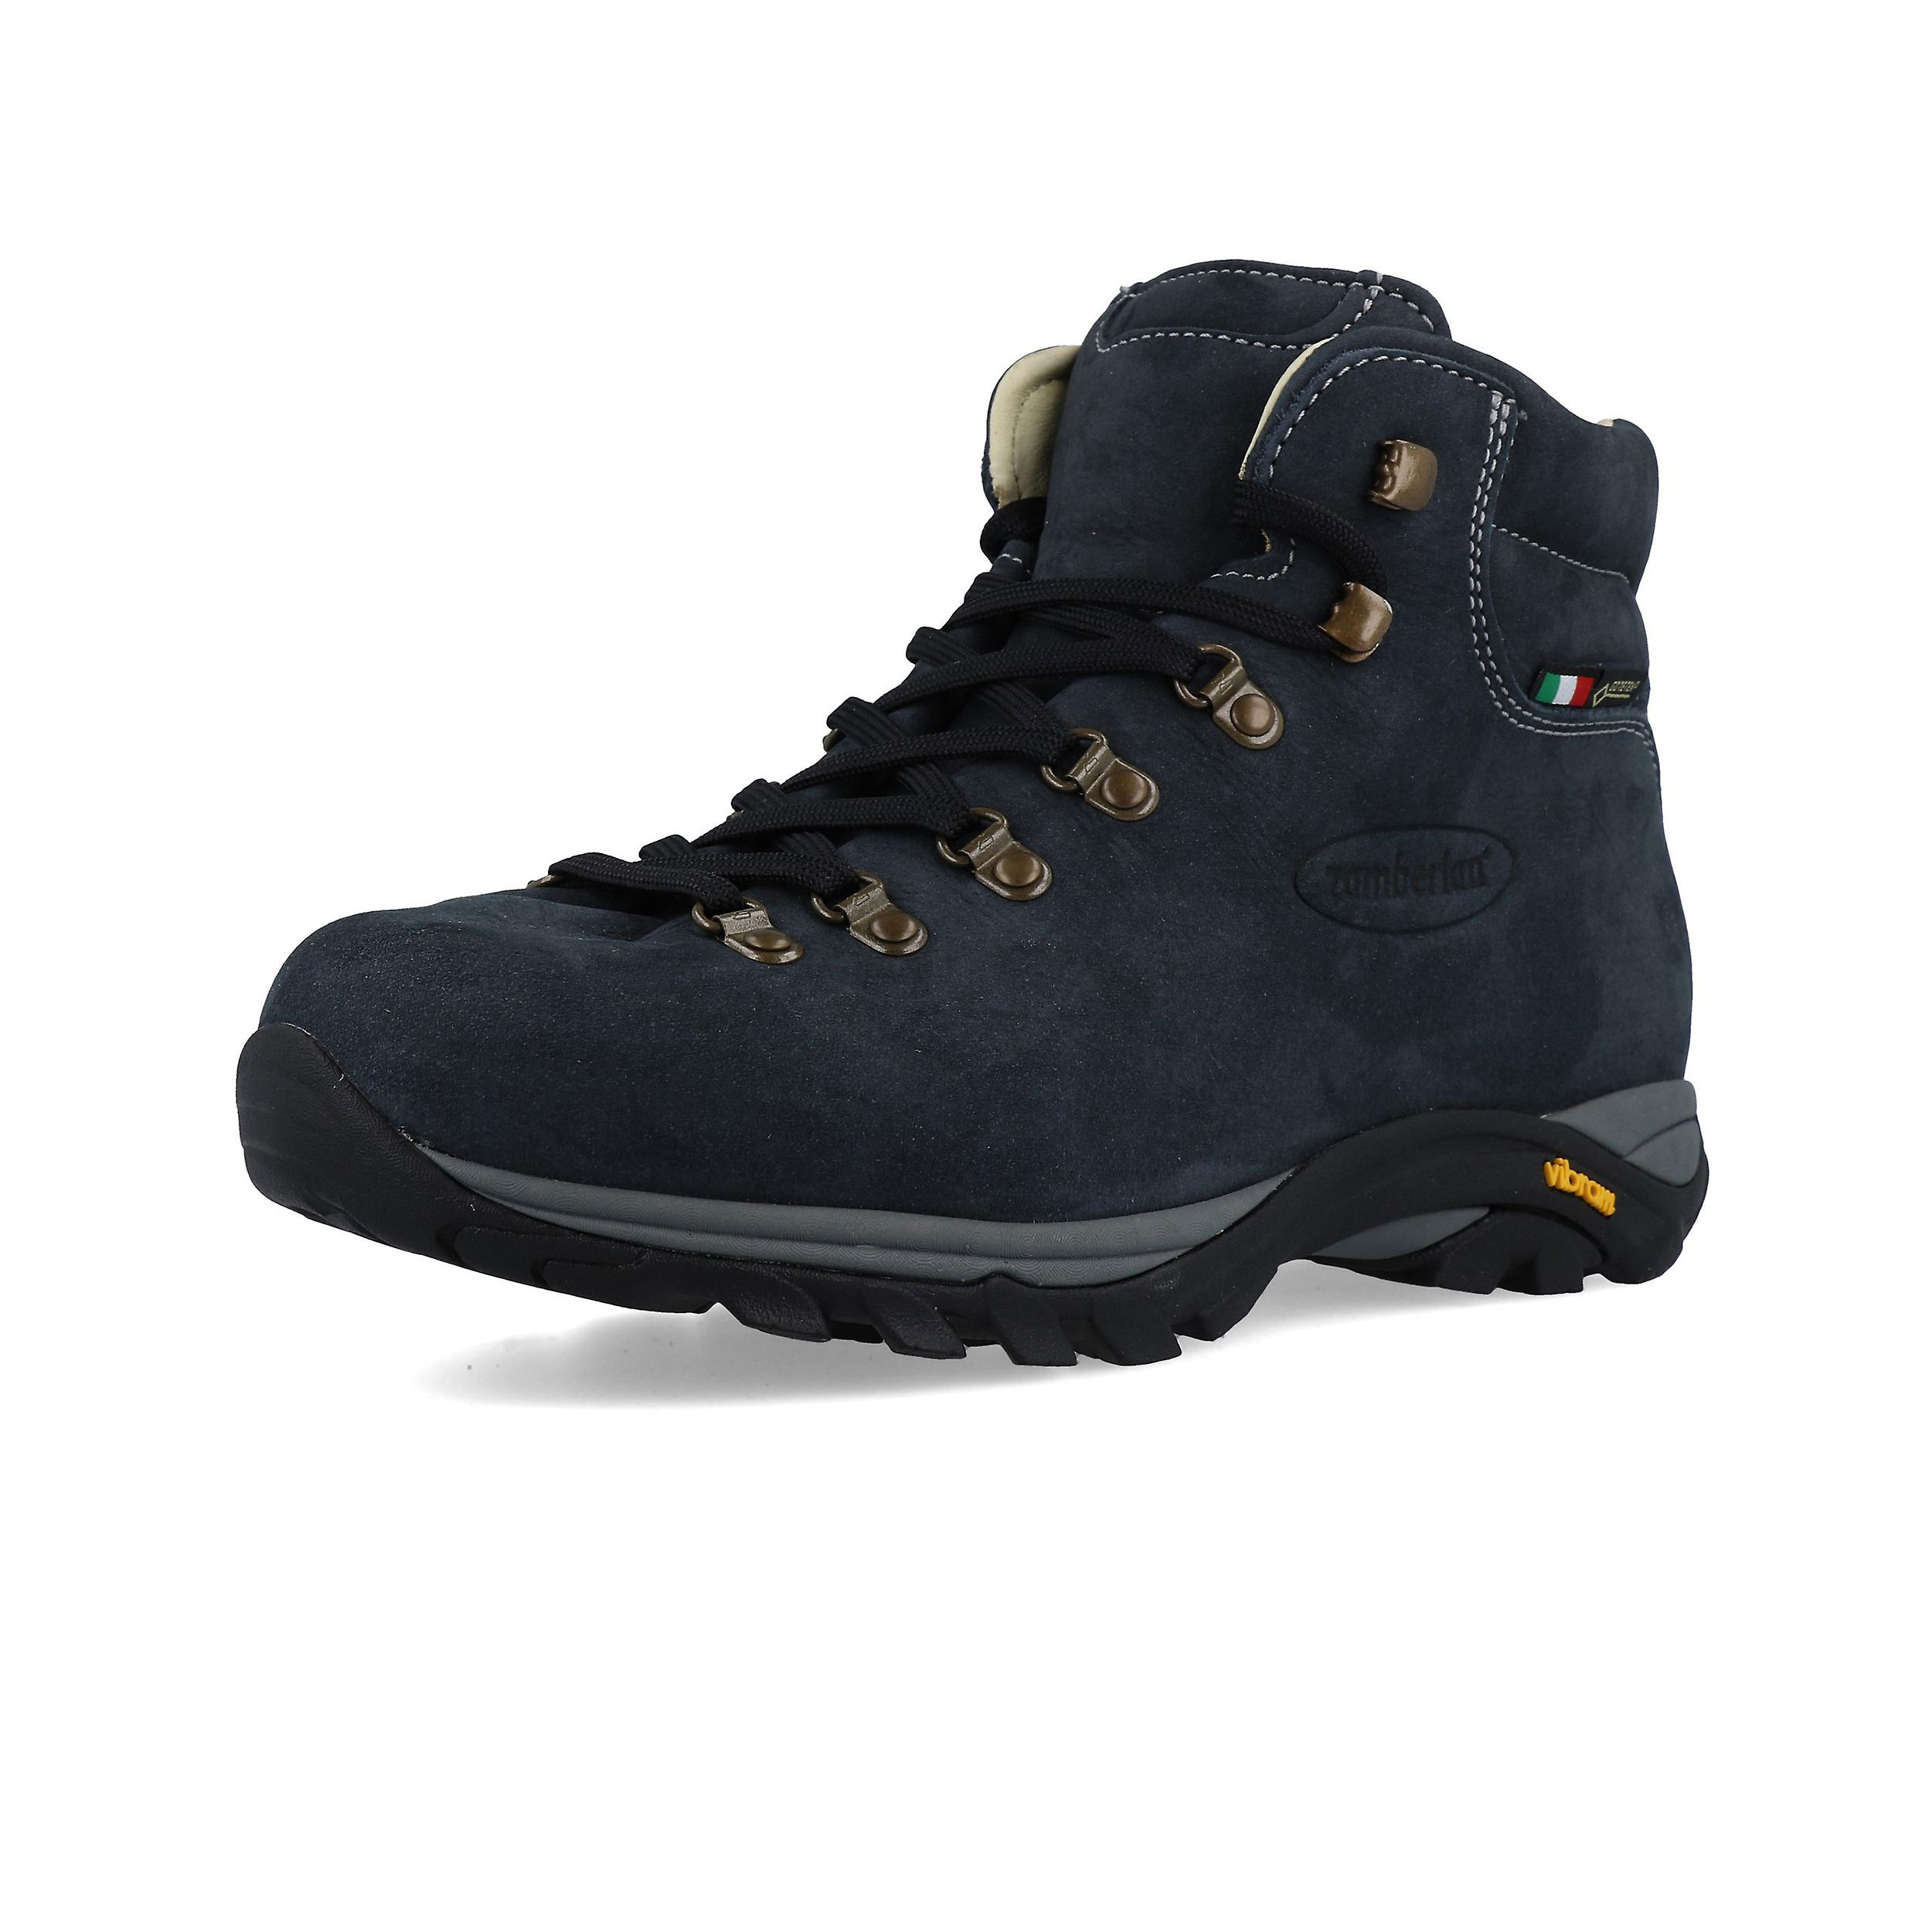 to buy casual shoes official site Zamberlan 320 New Trail Lite Evo Gore-Tex Walking Boots - AW19 ...